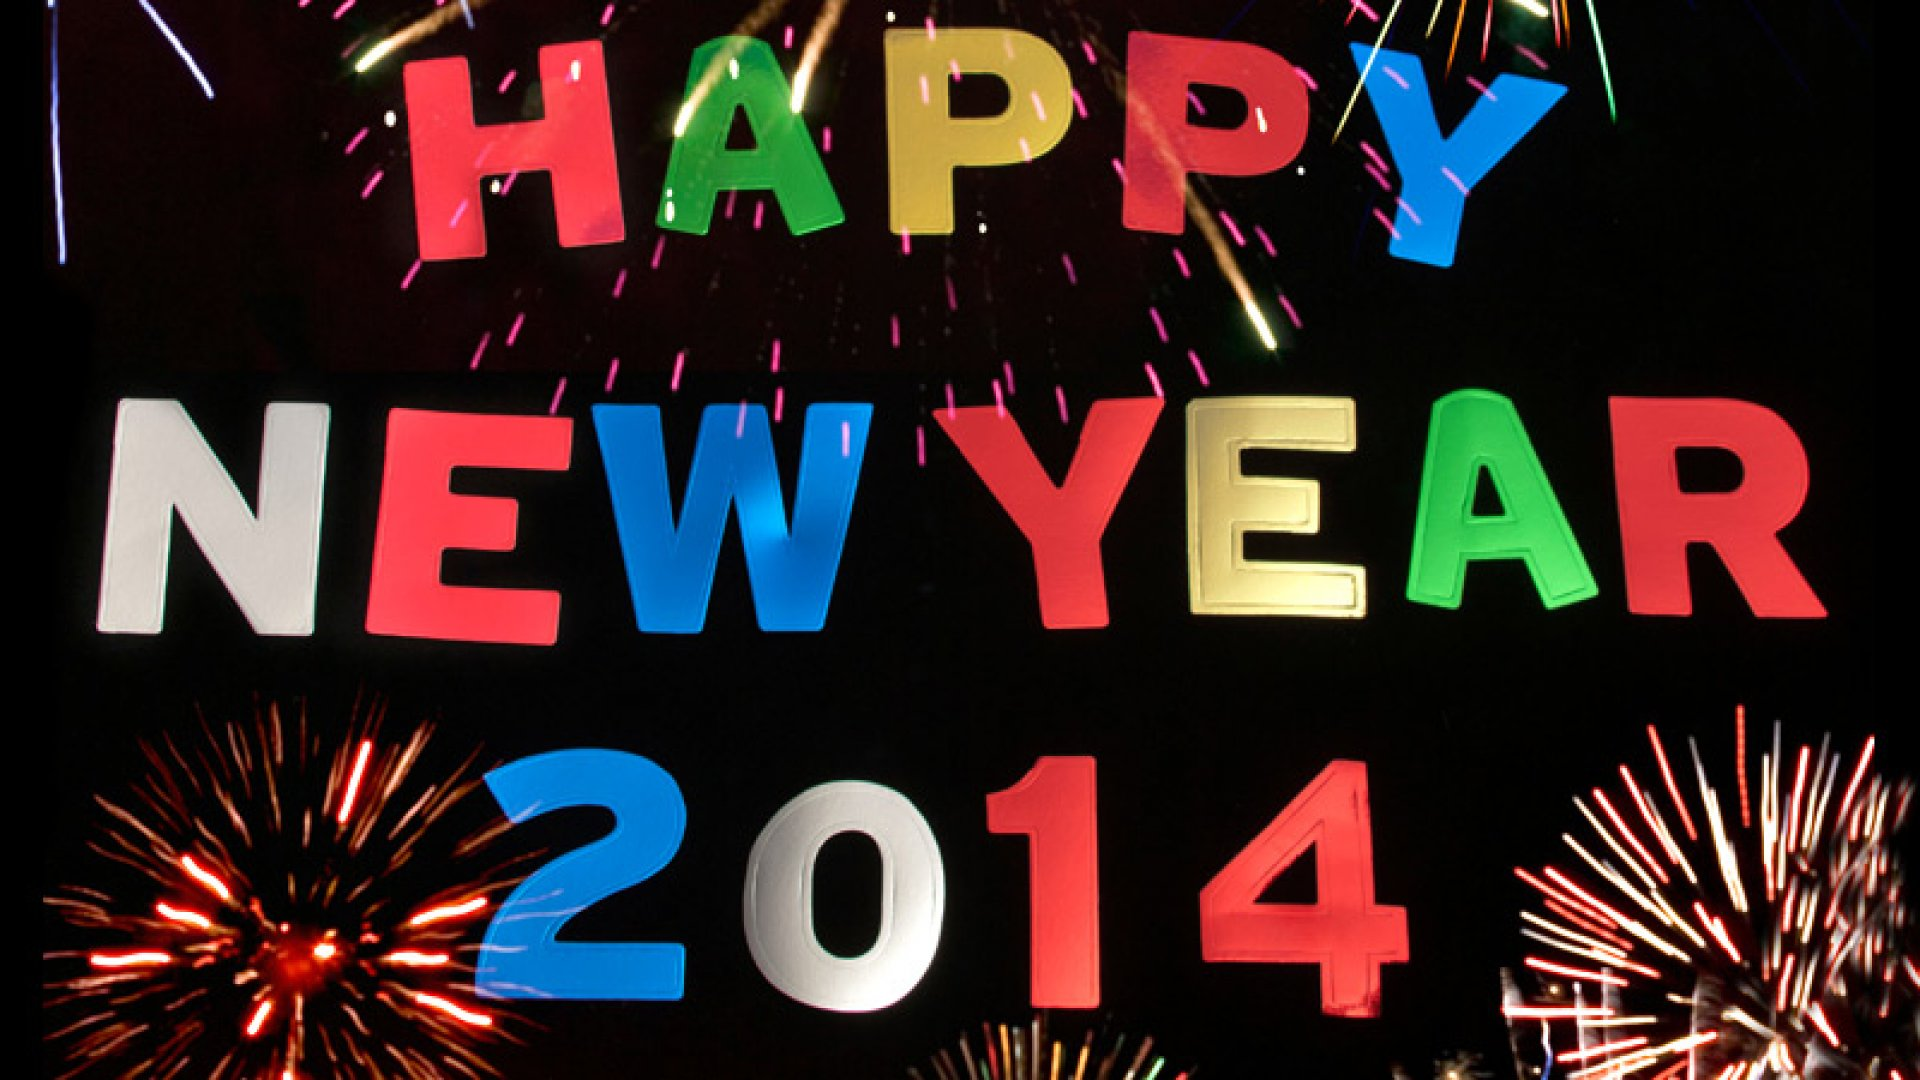 7 Ways to Make 2014 the Best Year You've Ever Had